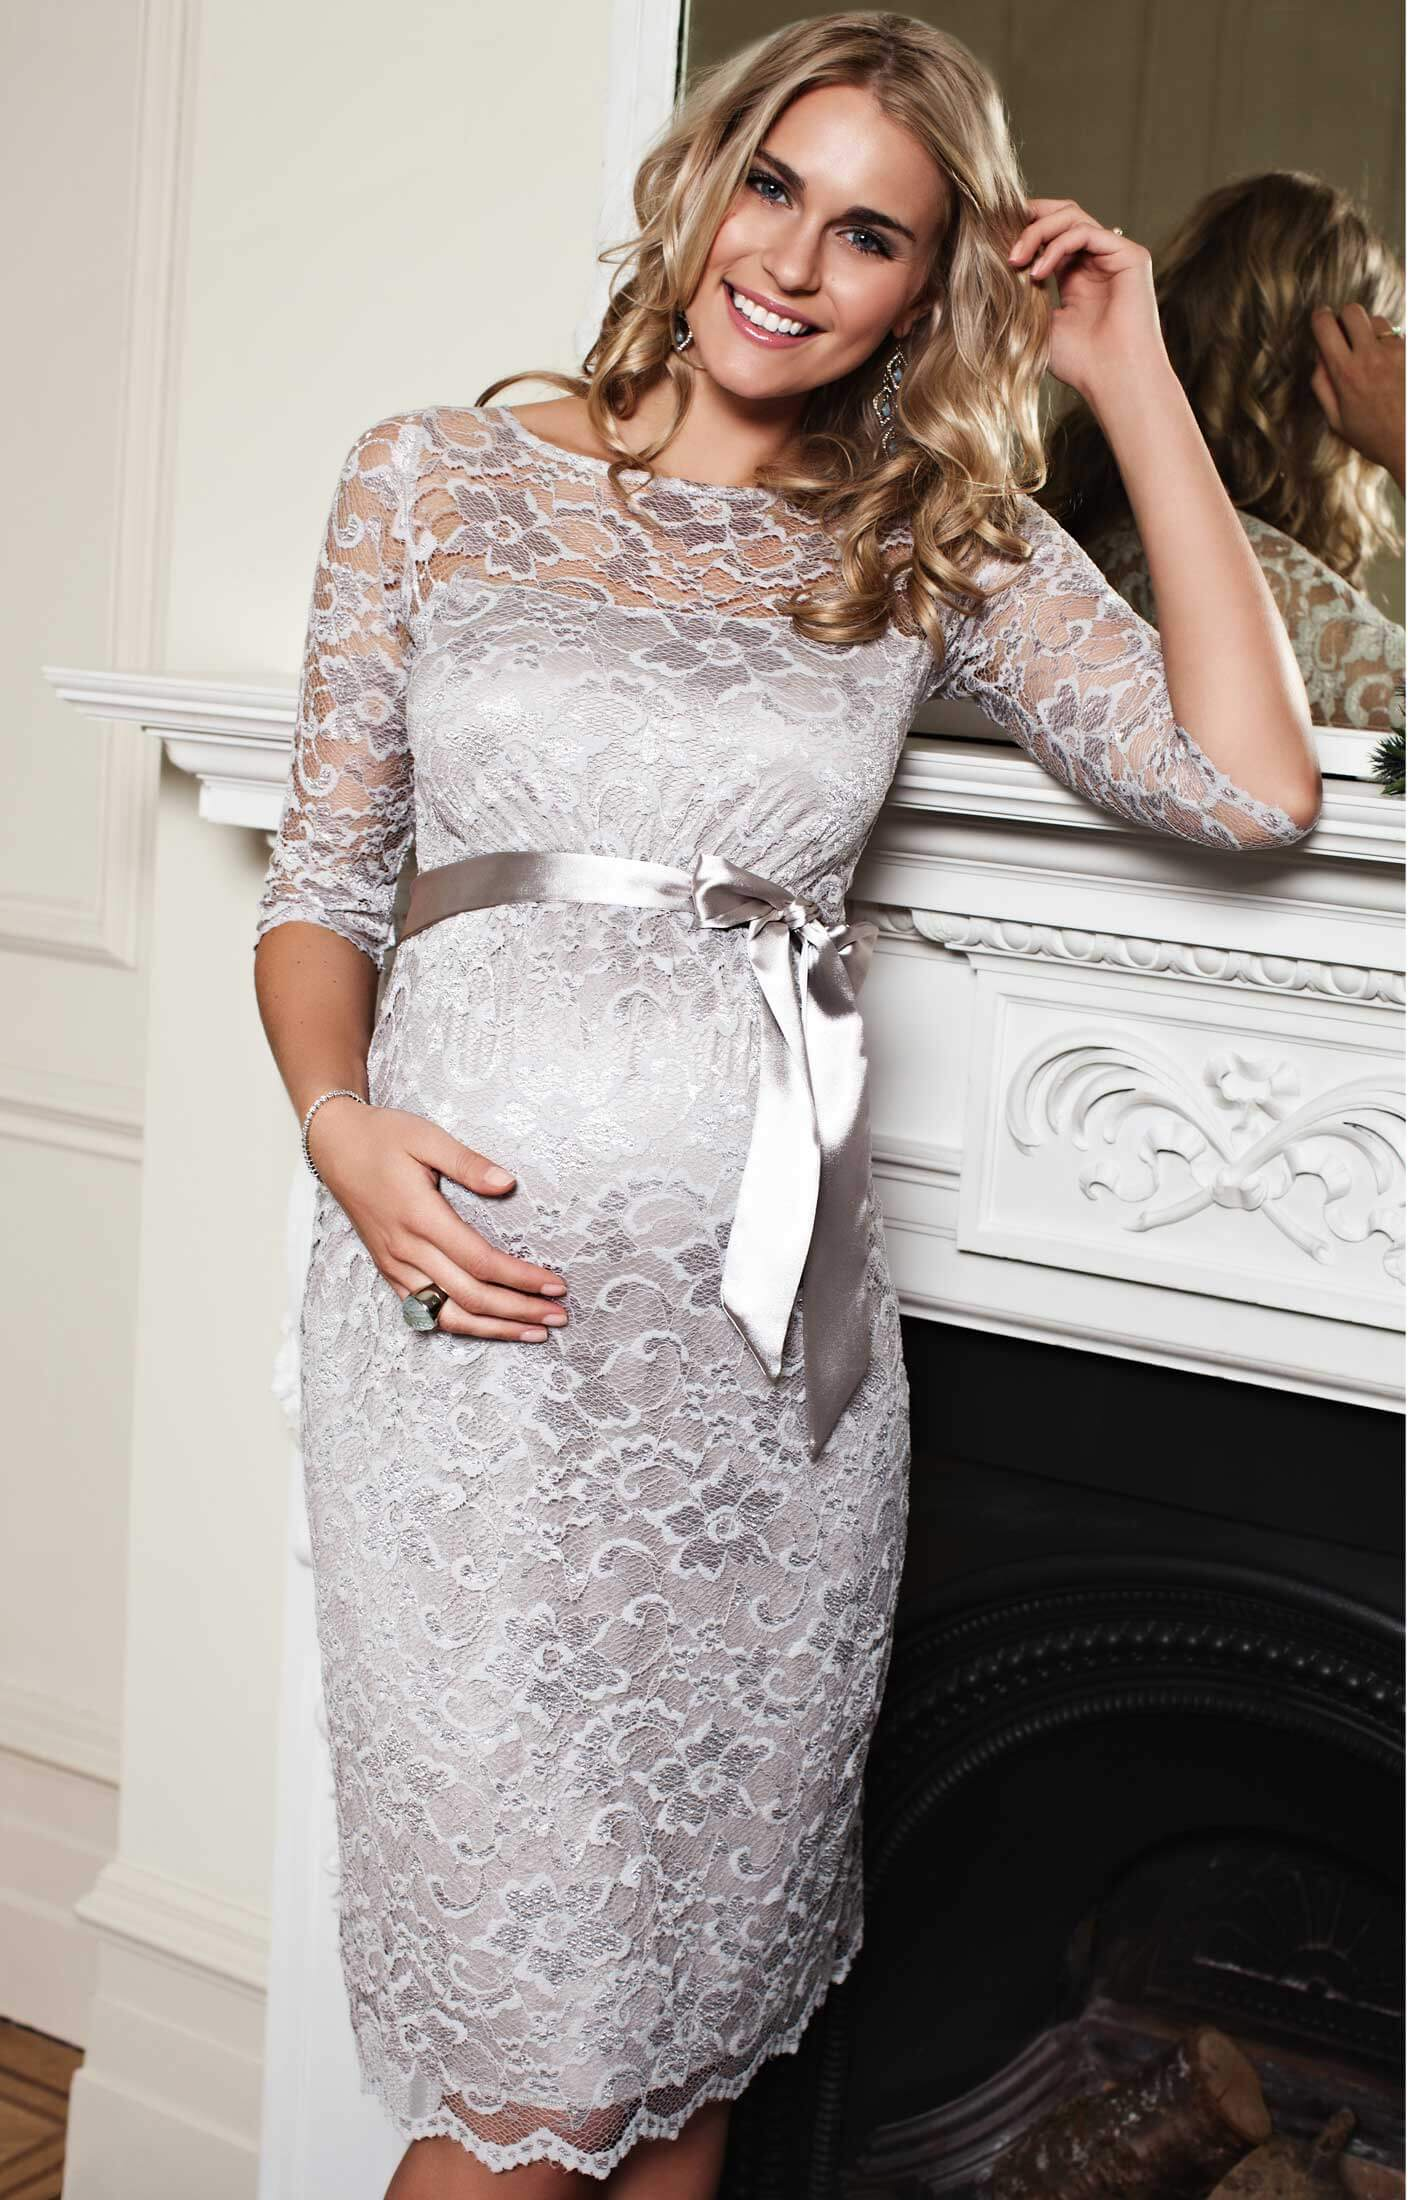 Amelia maternity dress short silver moonbeam maternity wedding amelia maternity dress short silver moonbeam maternity wedding dresses evening wear and party clothes by tiffany rose ombrellifo Choice Image